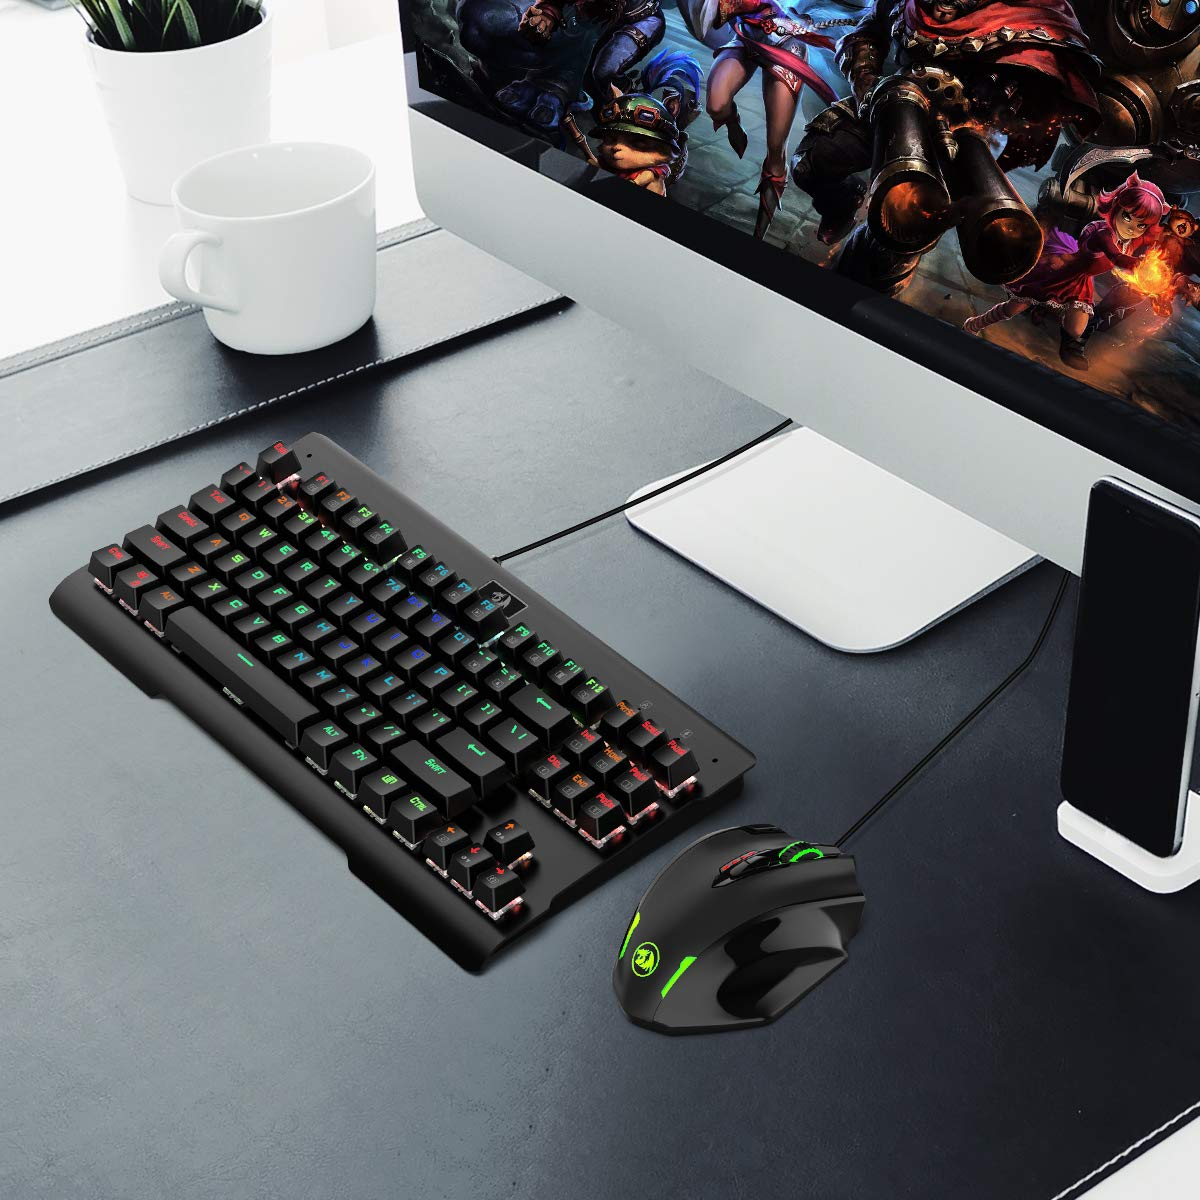 Redragon Impact RGB LED MMO Mouse with Side Buttons Laser Wired Gaming Mouse with 12,400DPI, High Precision, 19 Programmable Mouse Buttons by Redragon (Image #7)